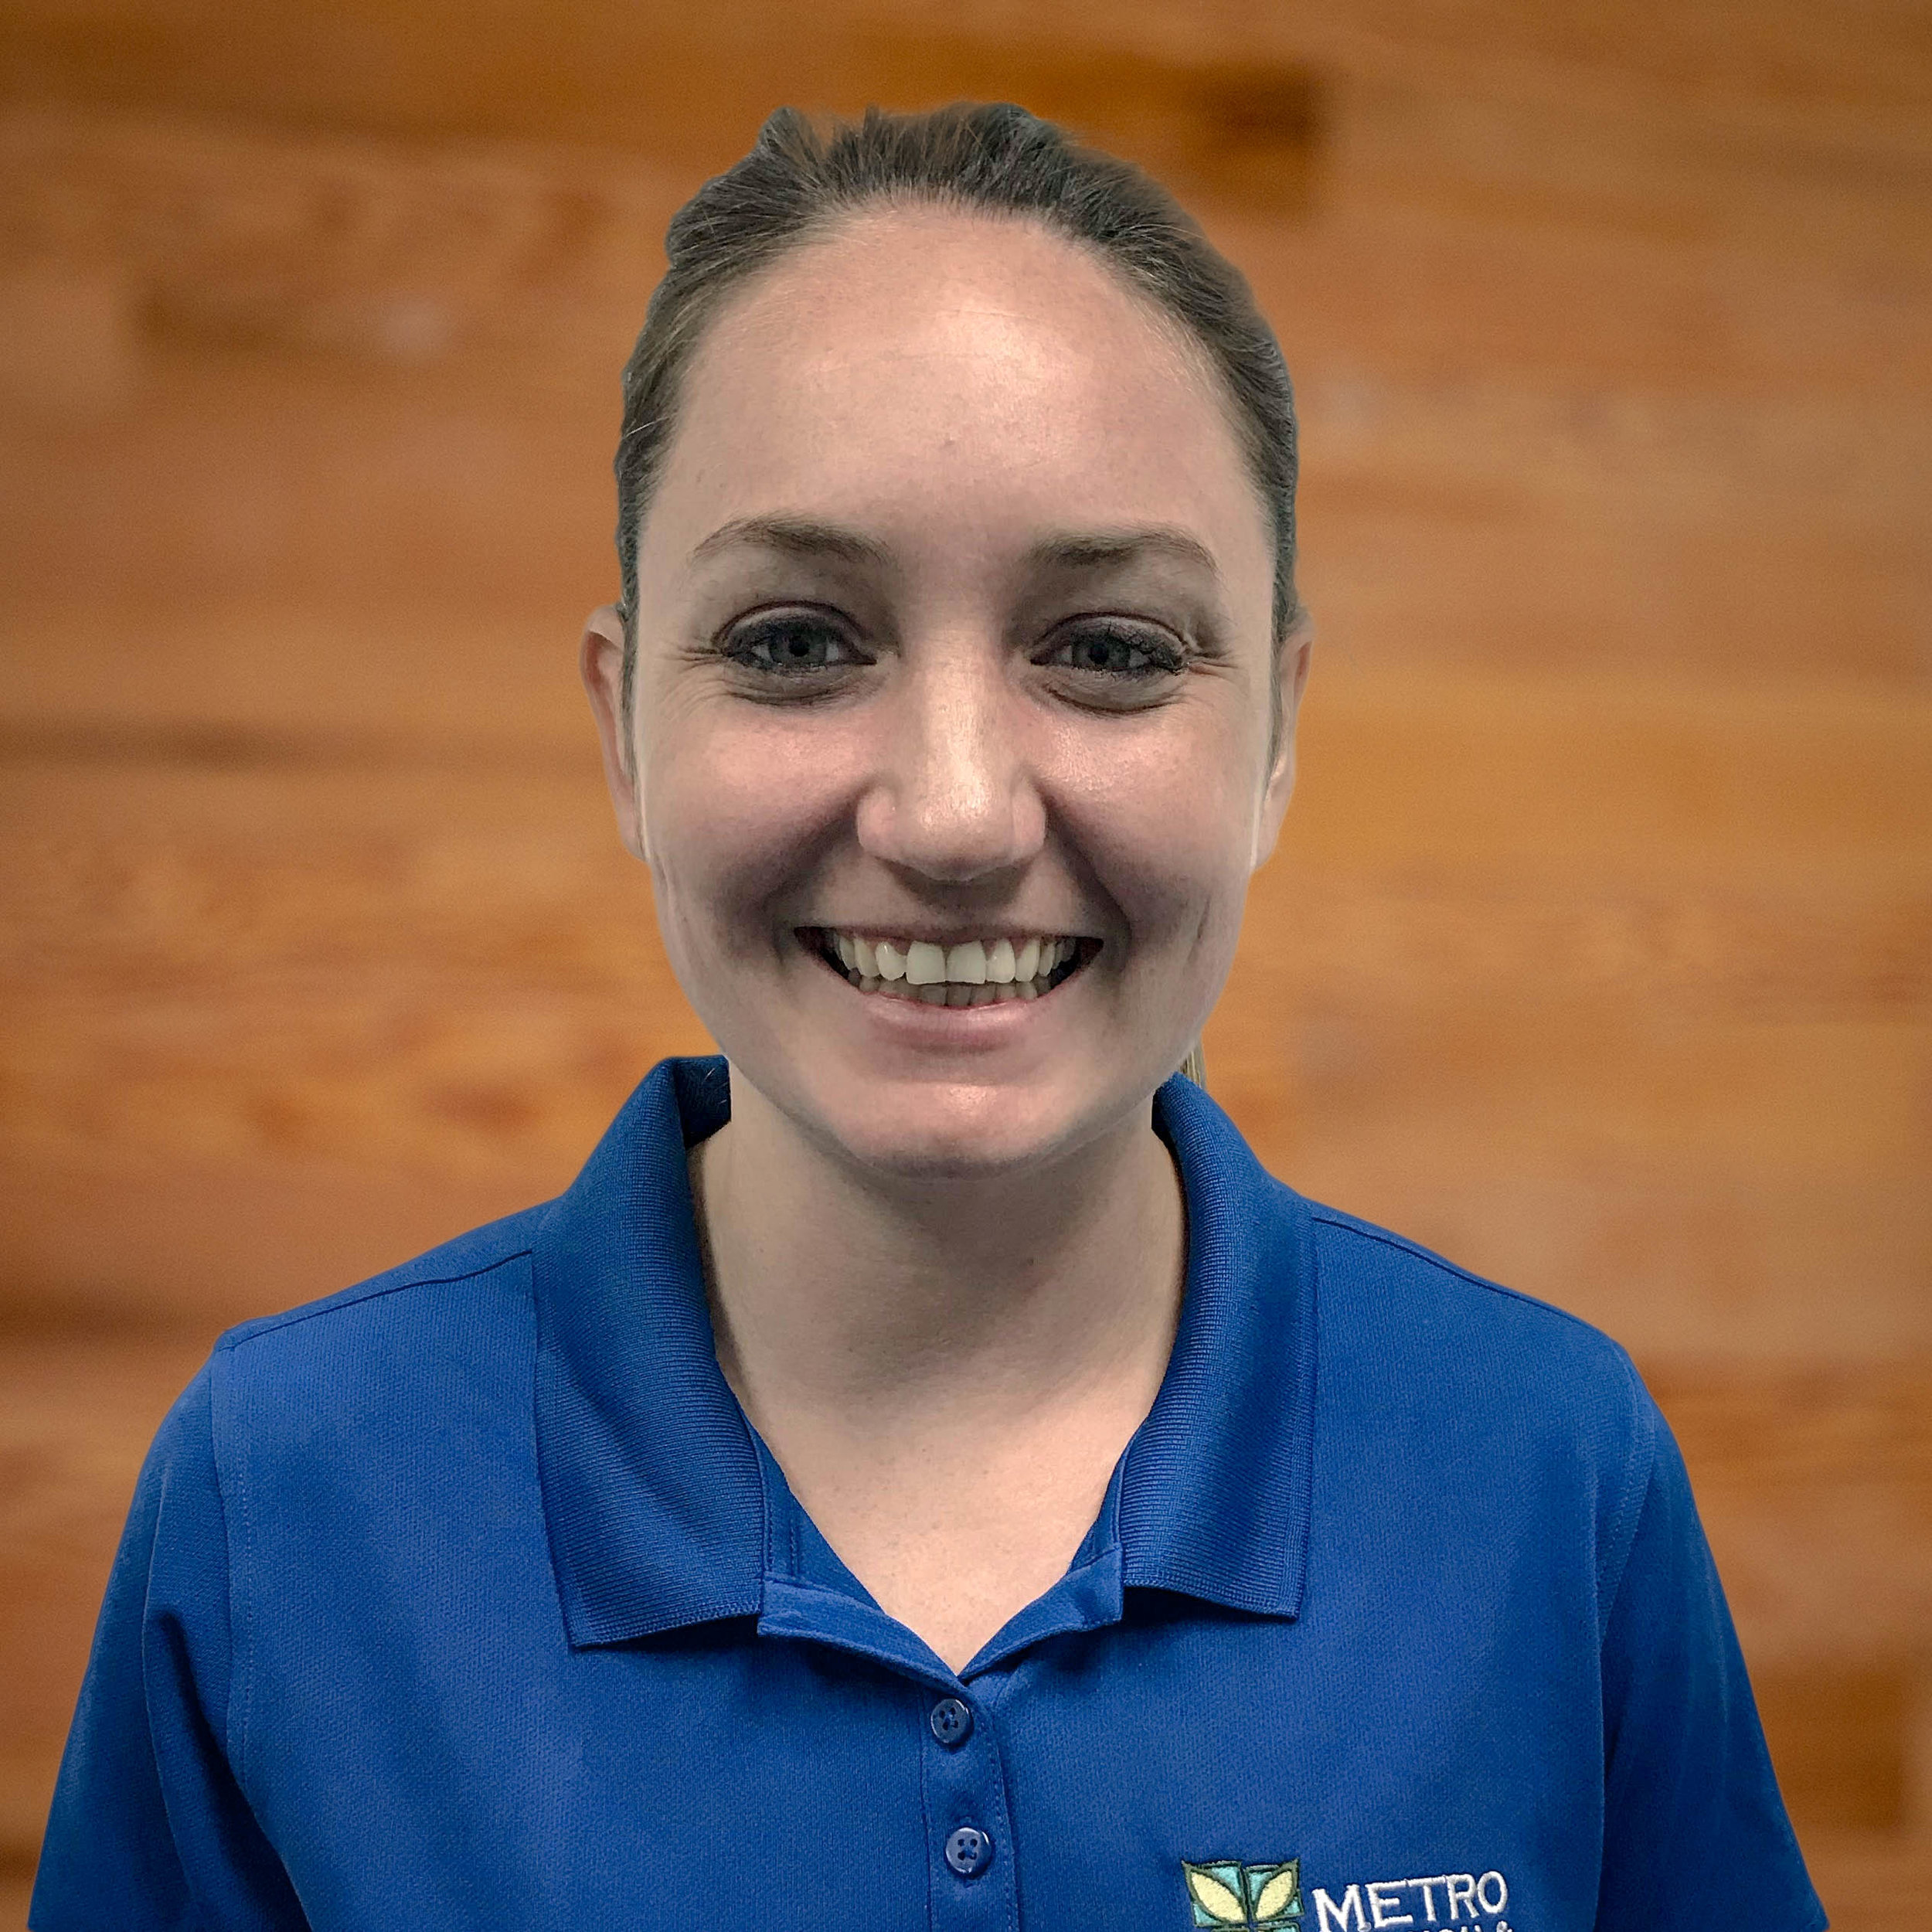 Emily Pape is a Physical Therapist at the Metro Physical Therapy Port Jefferson